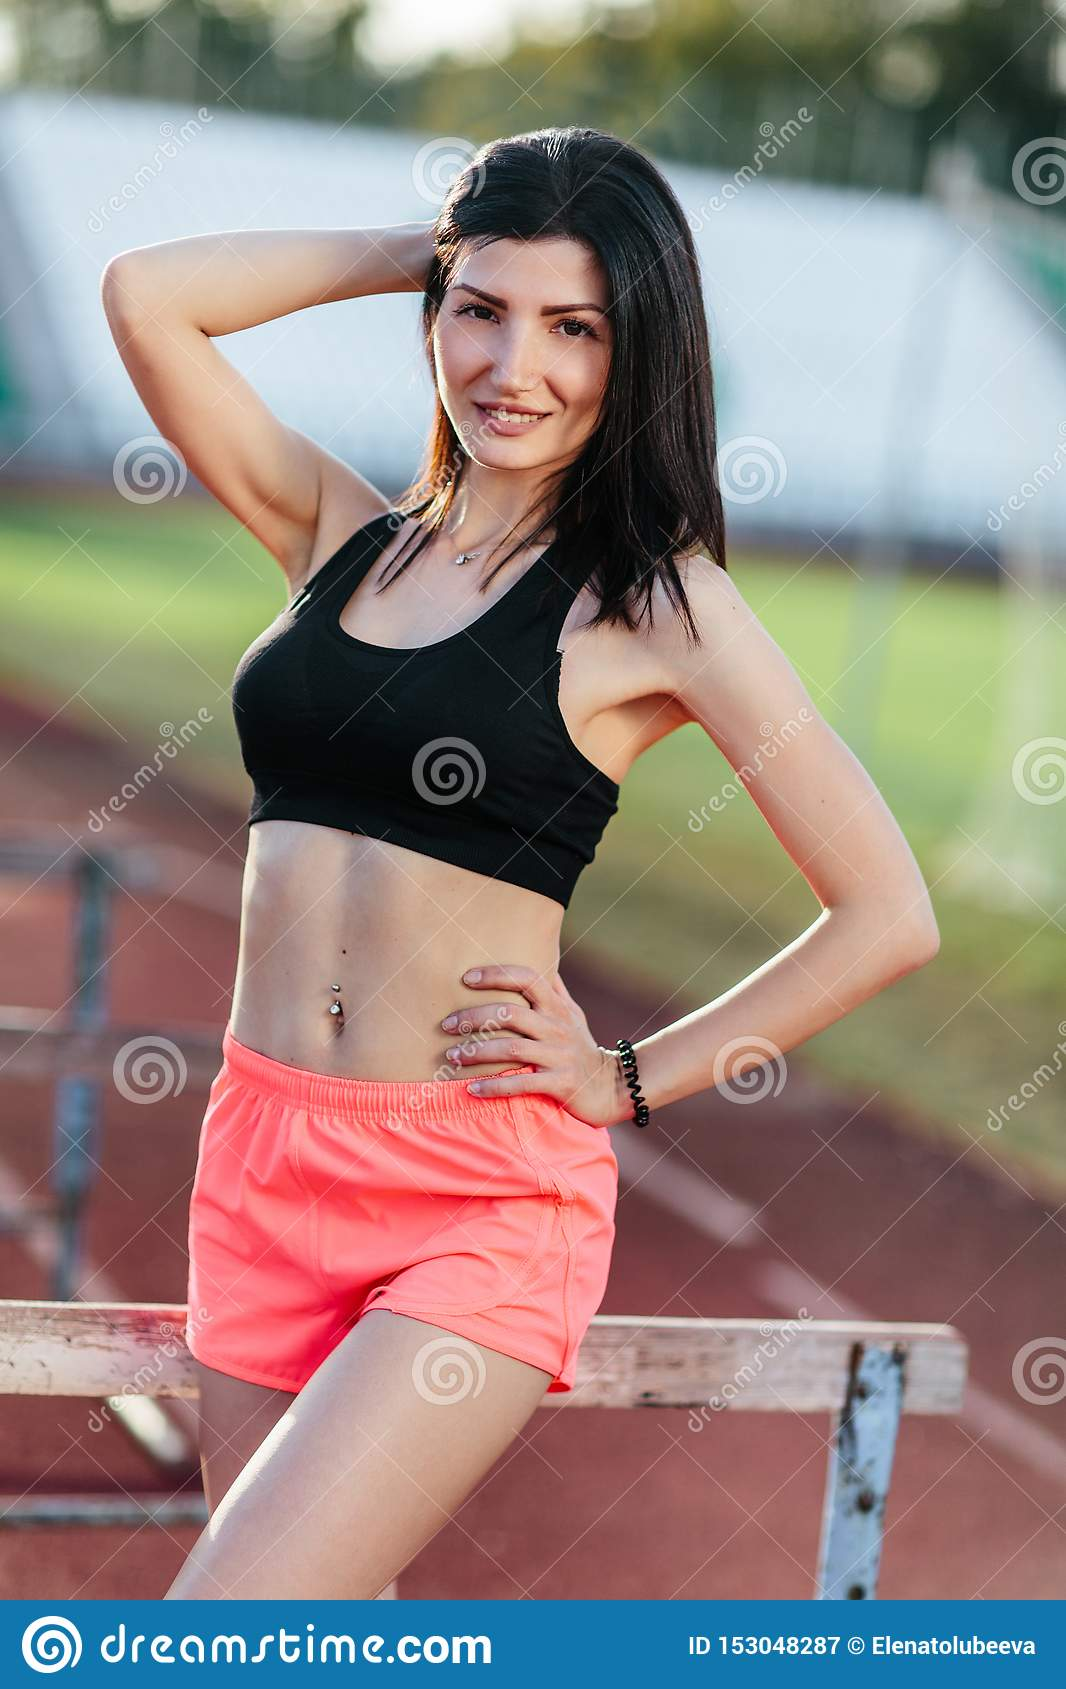 Portrait of young brunette woman athlete on stadium sporty lifestyle standing on track posing near the barriers running jumping to